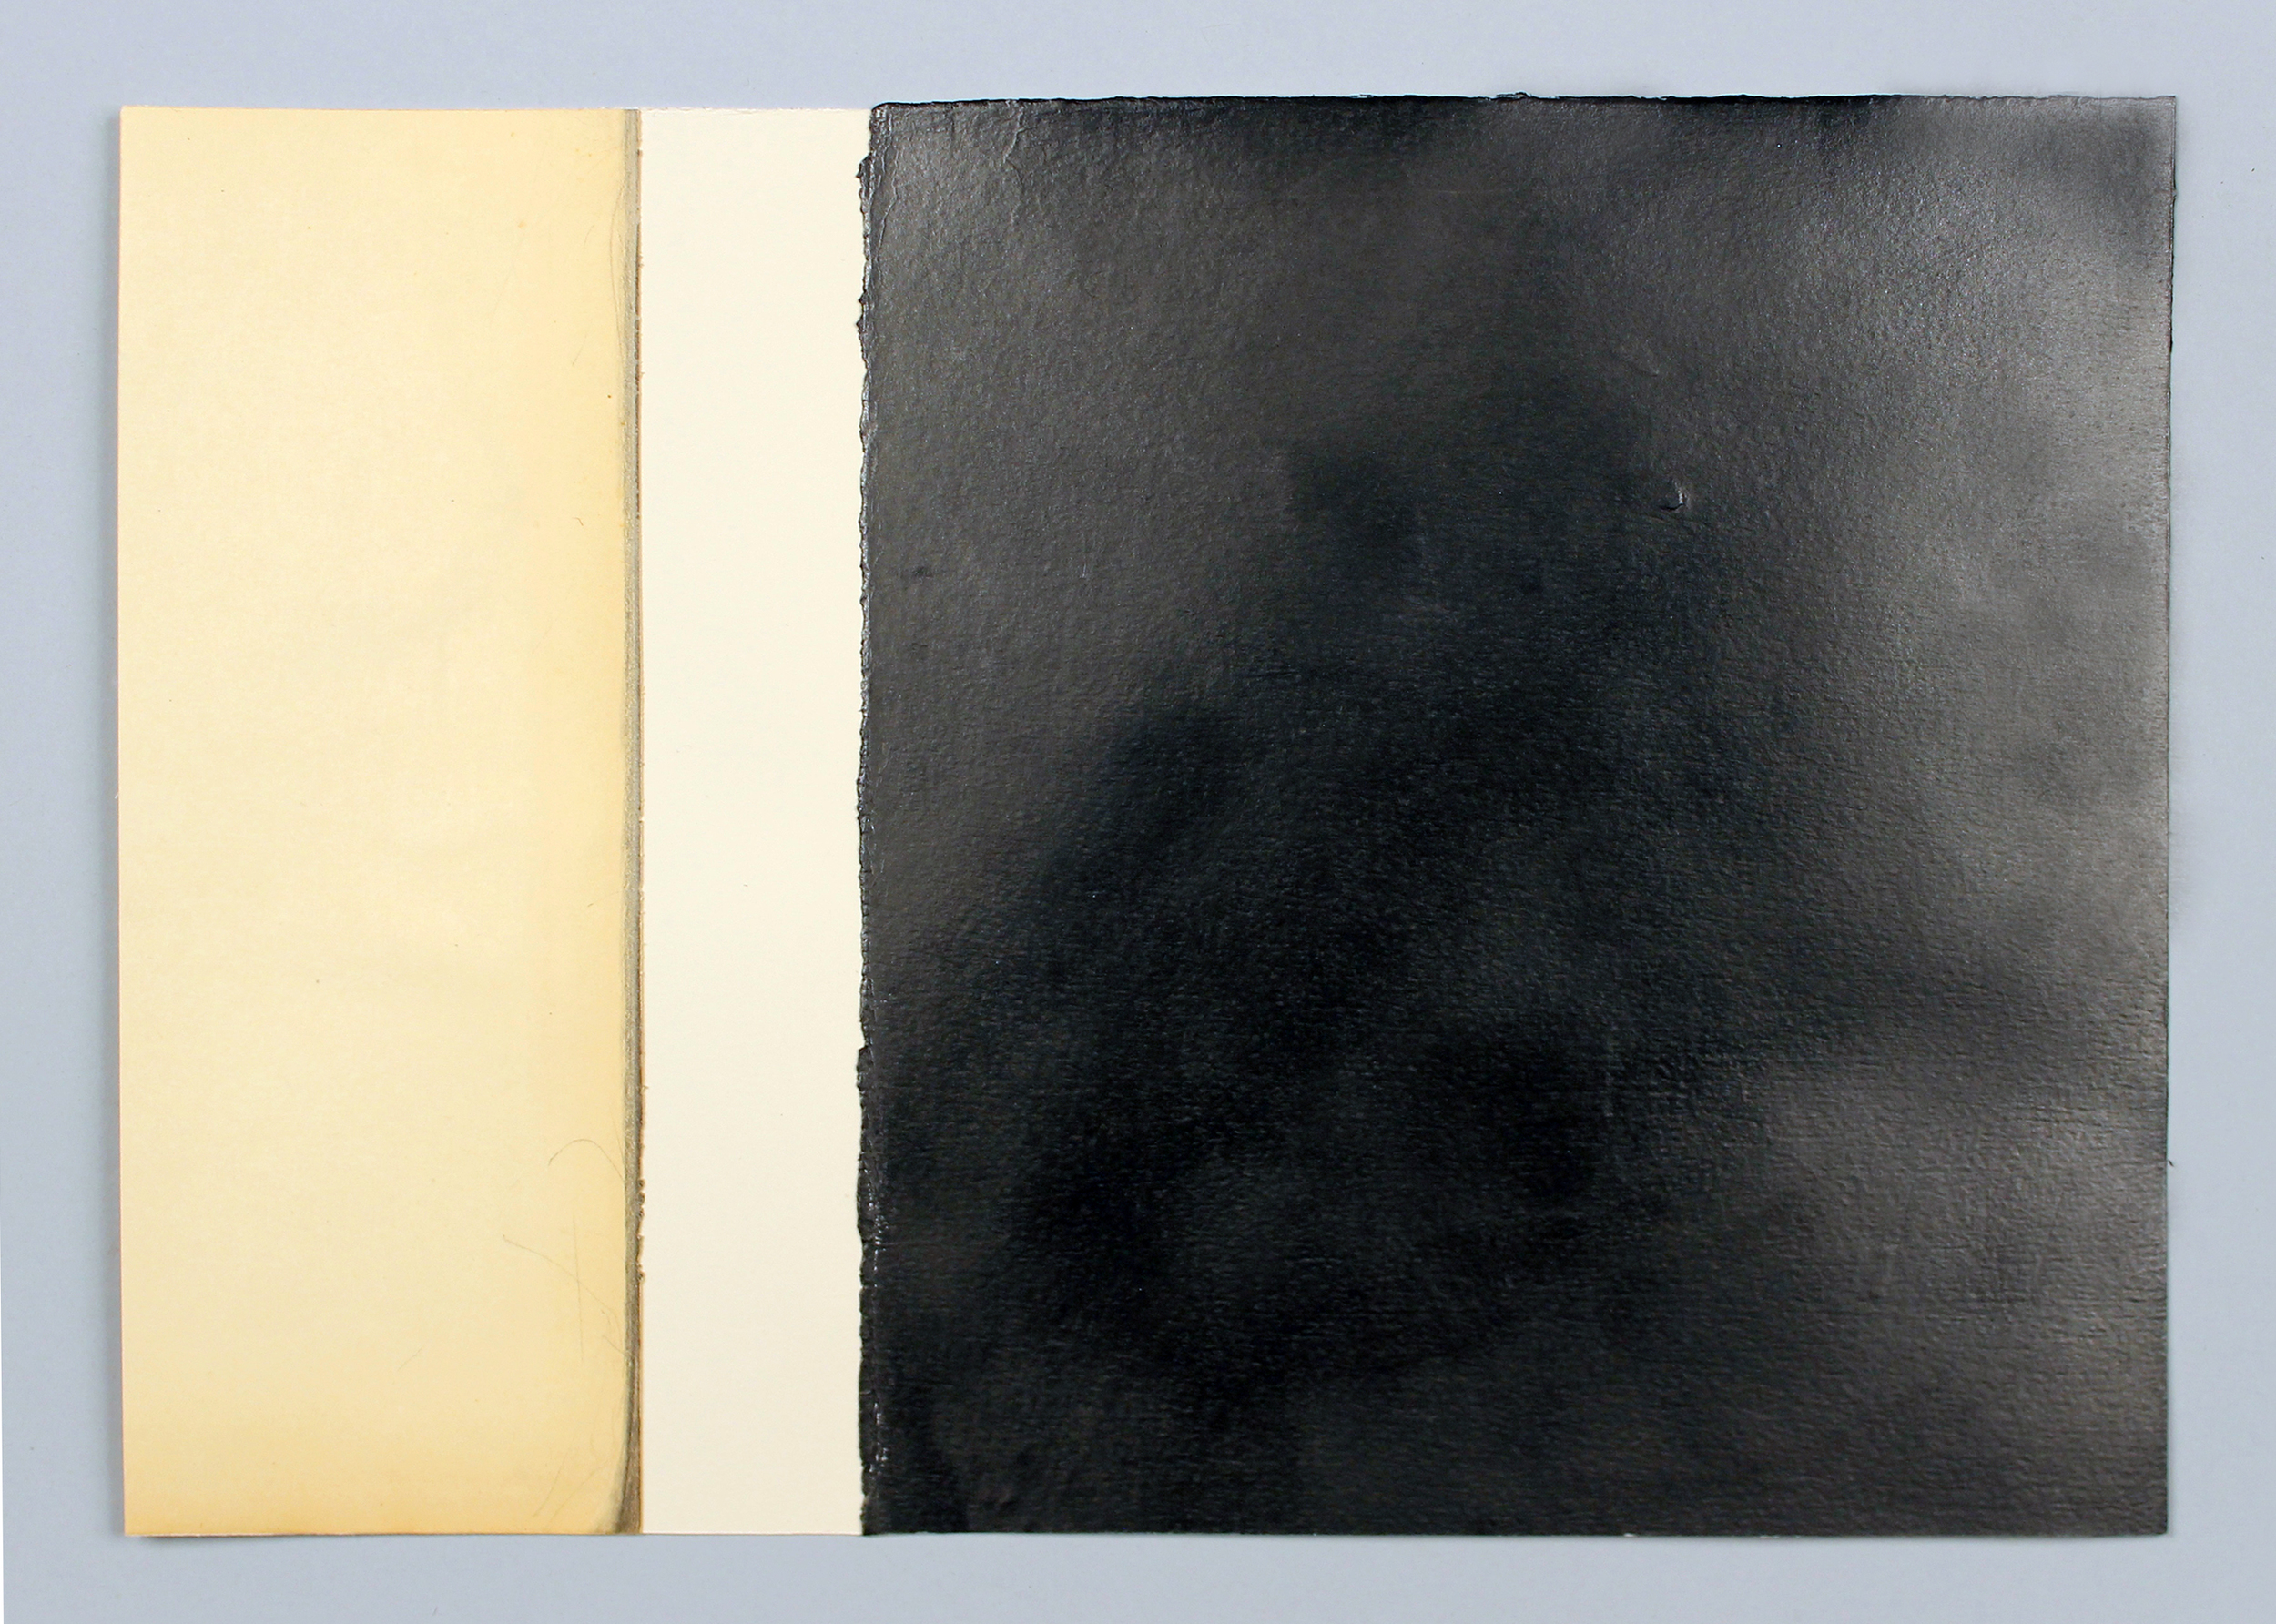 """Sala Rotunda  Found object, graphite powder and archival wax on Fabriano Rosaspina paper, 14.25"""" x 17.25"""" (framed), 2012-2013"""